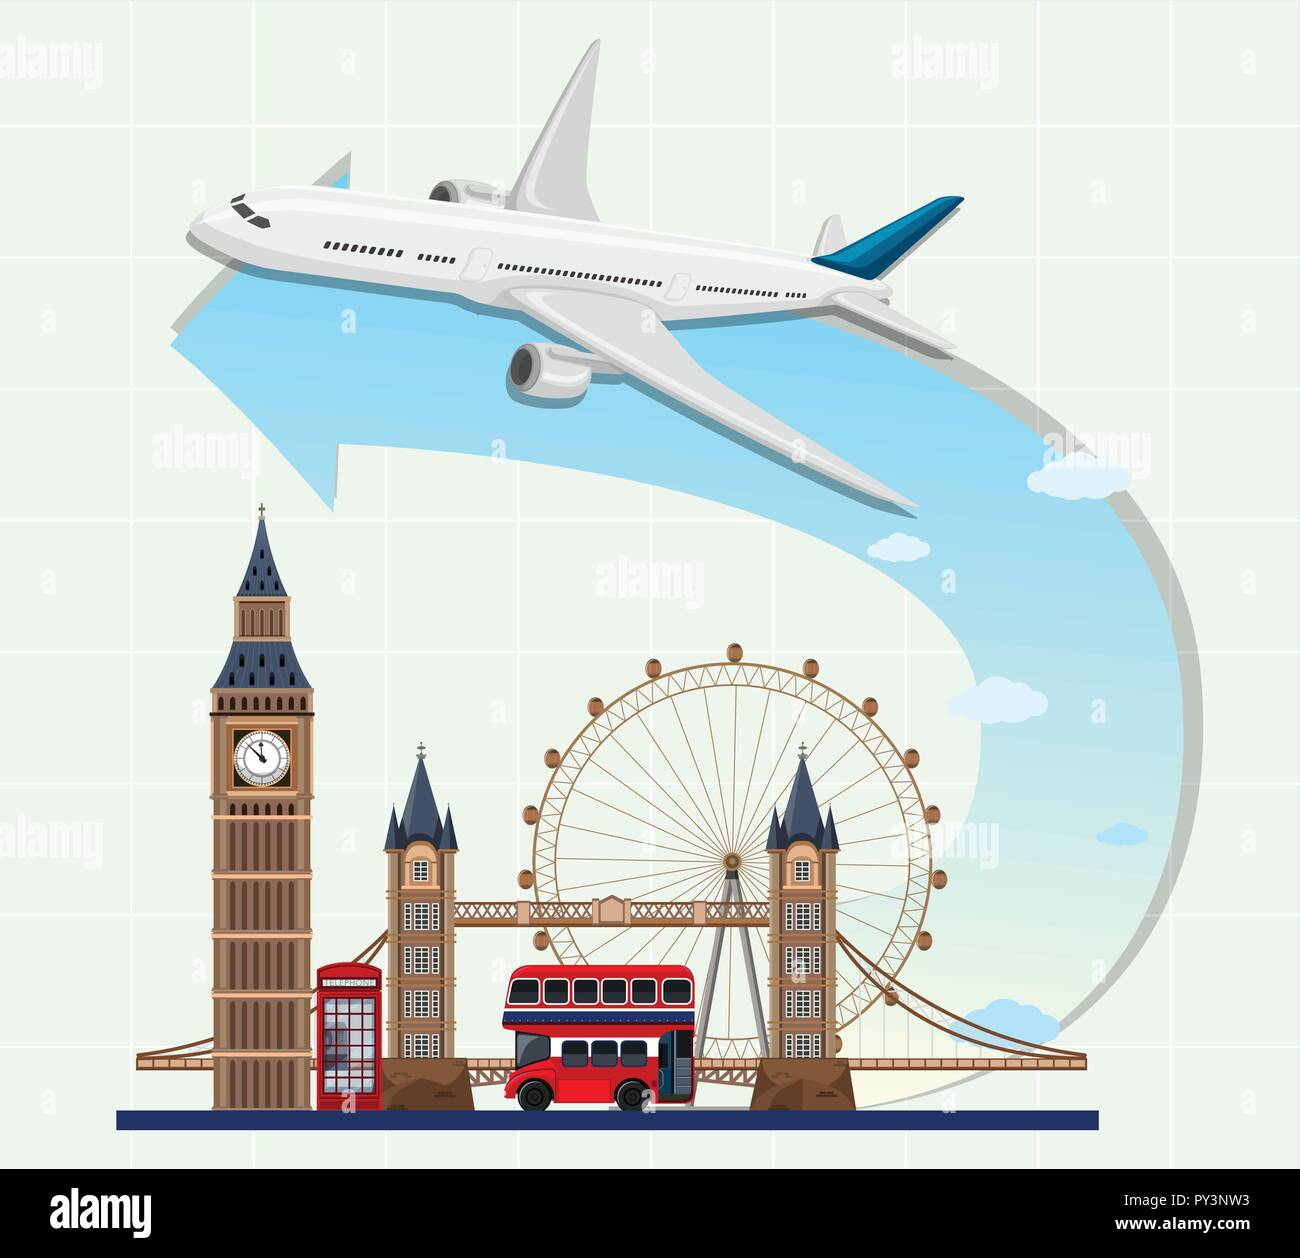 England landmarks with airplane illustration - Stock Vector